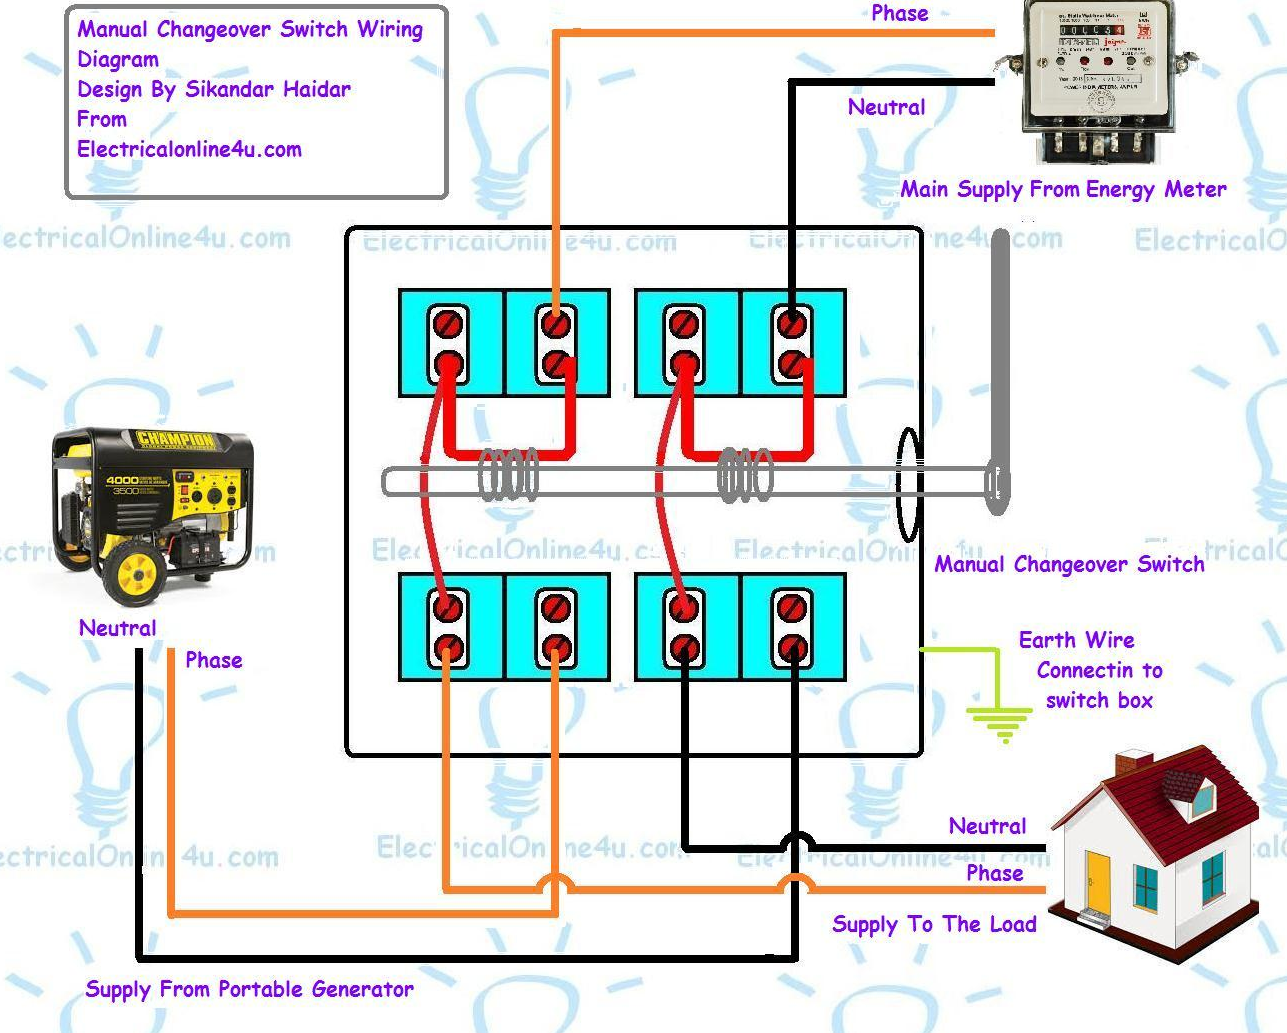 manual%2Bchangeover%2Bswitch%2Bwiring%2Bdiagram manual changeover switch wiring diagram for portable generator electric switch wiring diagram at edmiracle.co